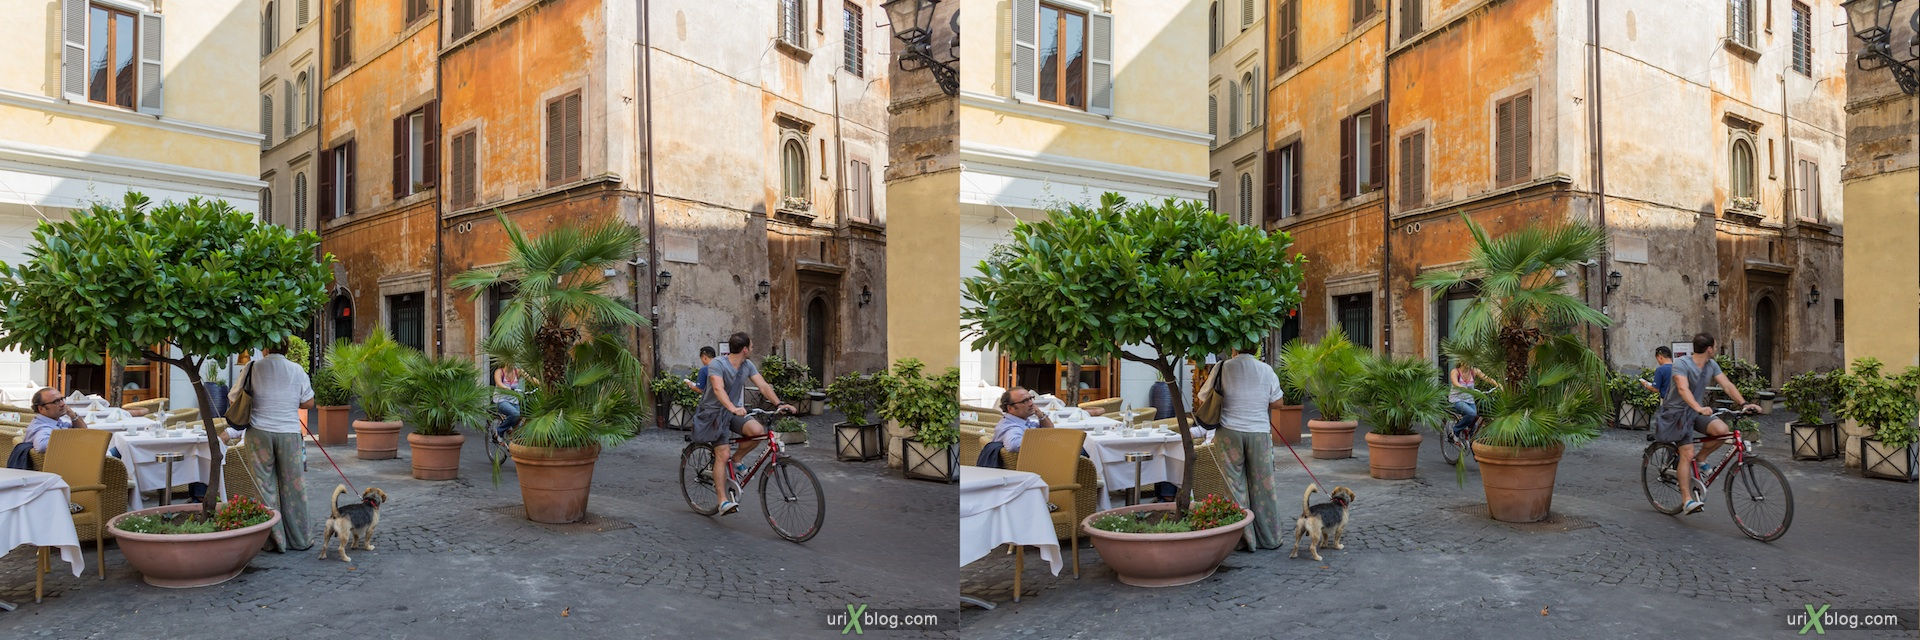 2012, Рим, Италия, Rome, Italy, улица Коронари, via dei Coronari, 3D, stereo pair, cross-eyed, crossview, стерео, стереопара